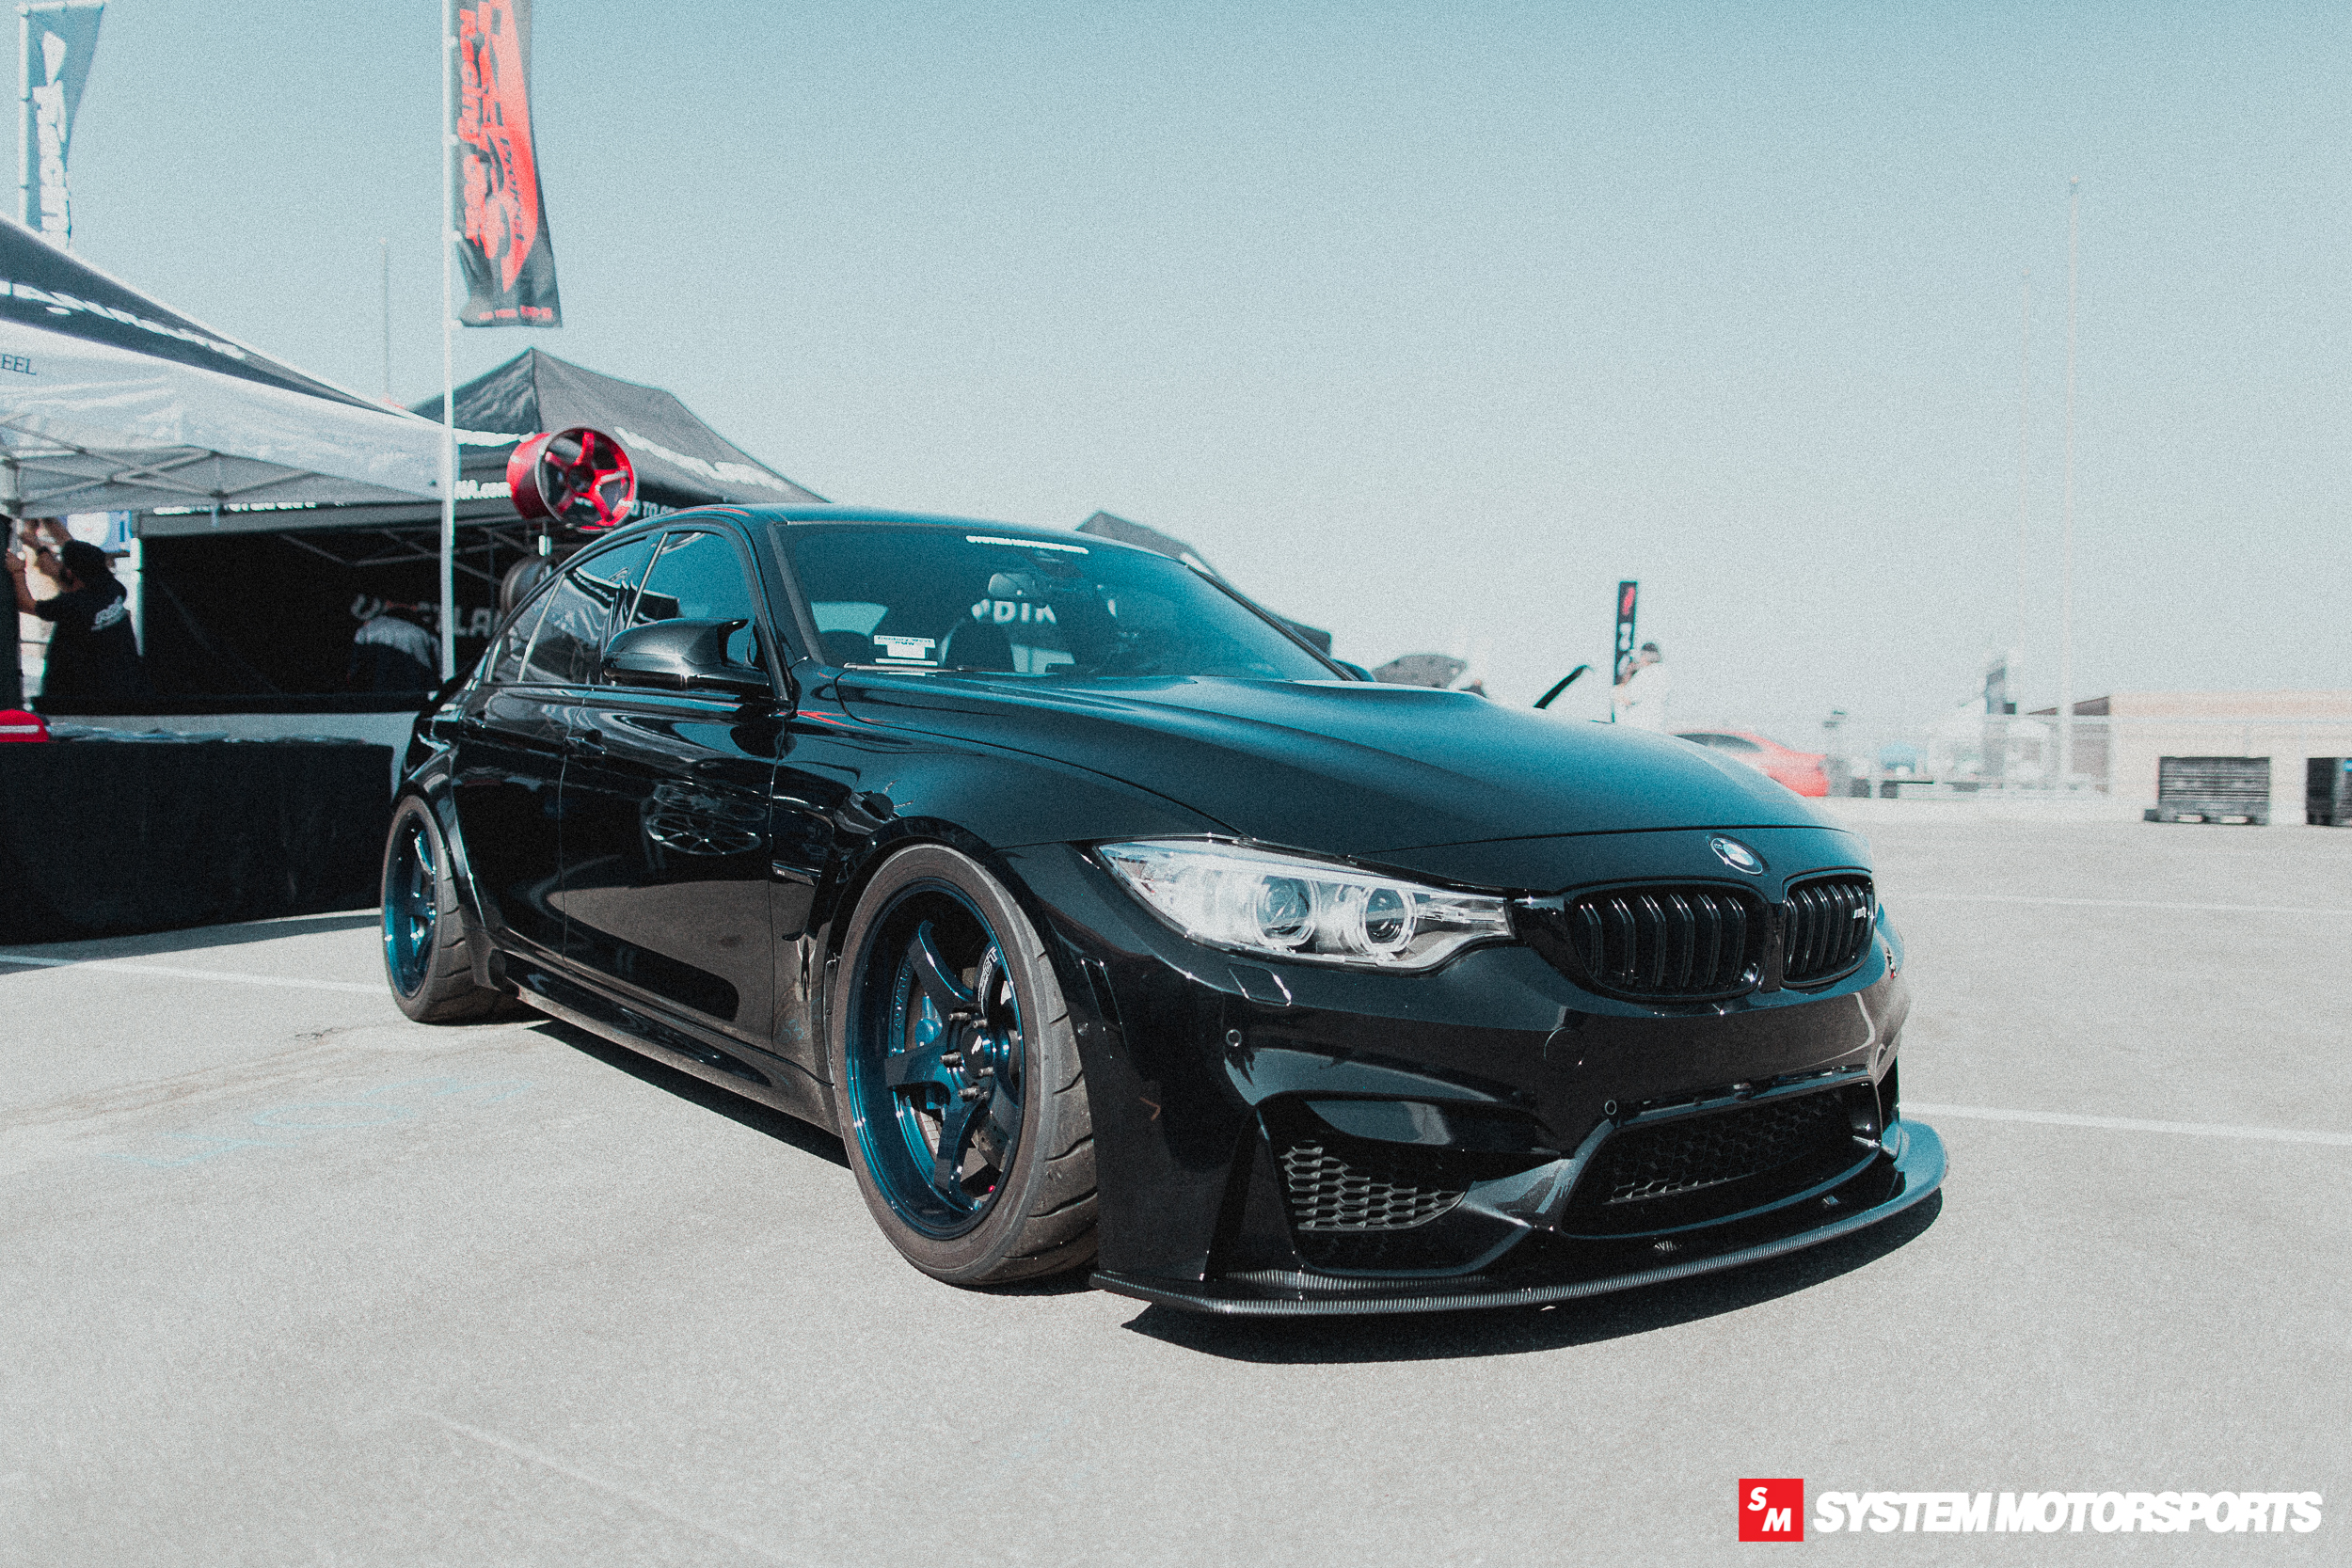 System Motorsports F80 M3 on Yokohama Advan GT Premium in Racing Titanium Blue at Bimmerfest 2019